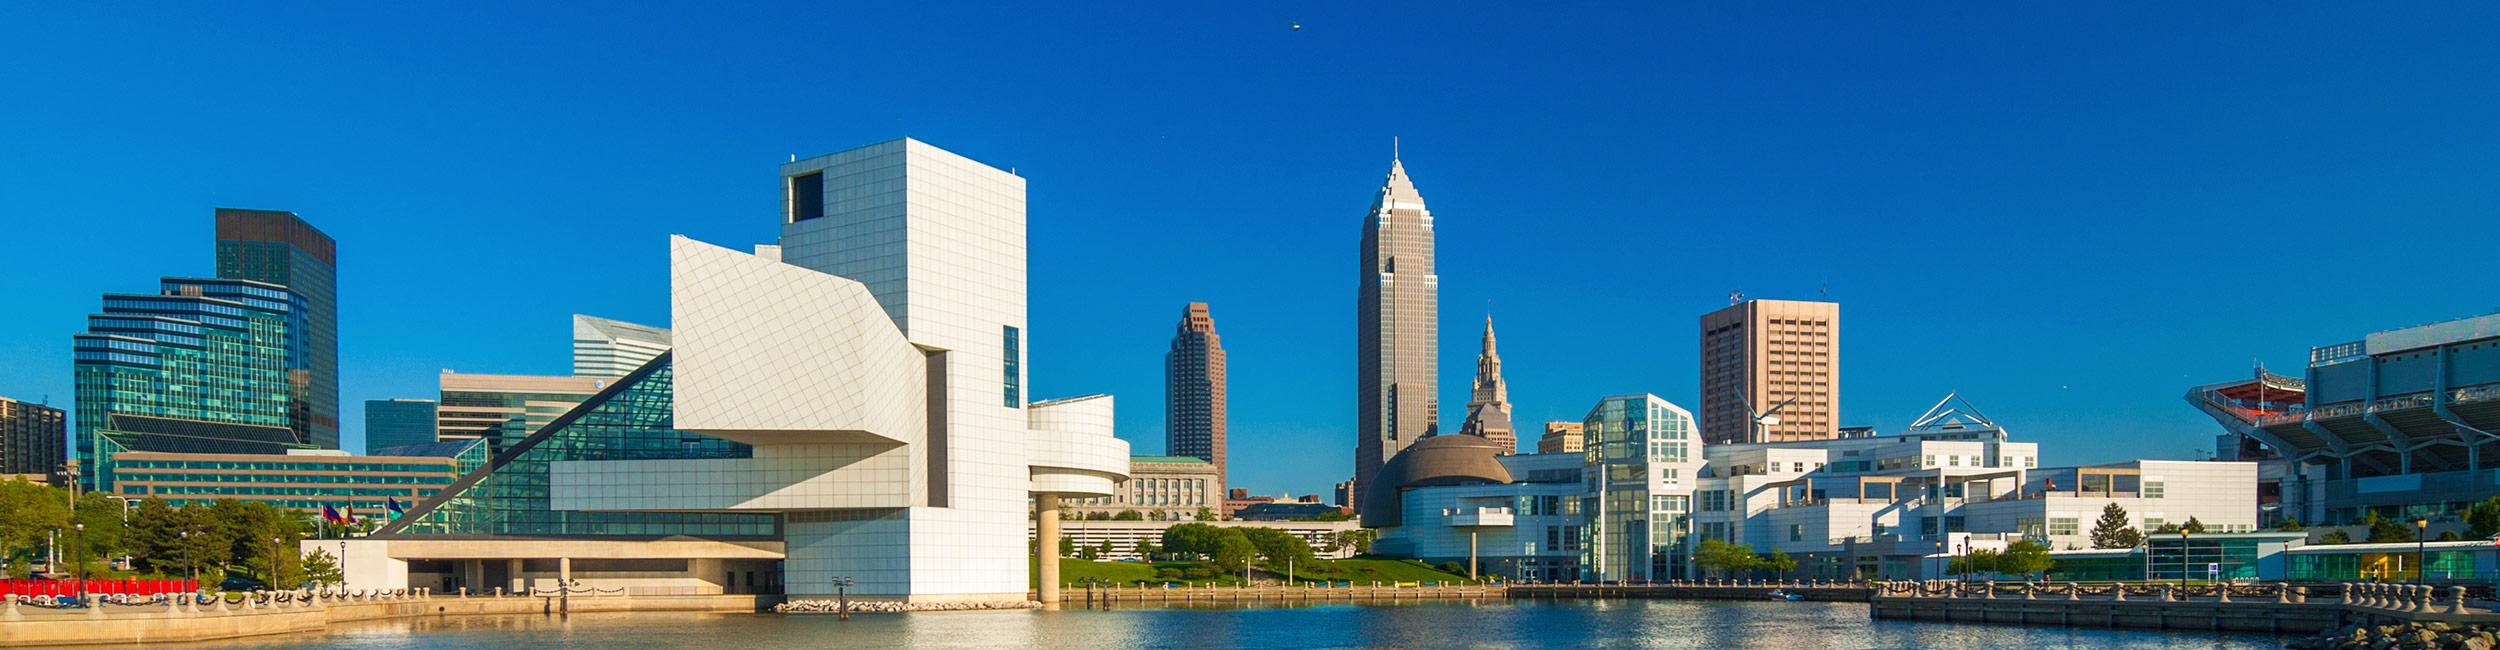 Downtown Cleveland photographed from the lake